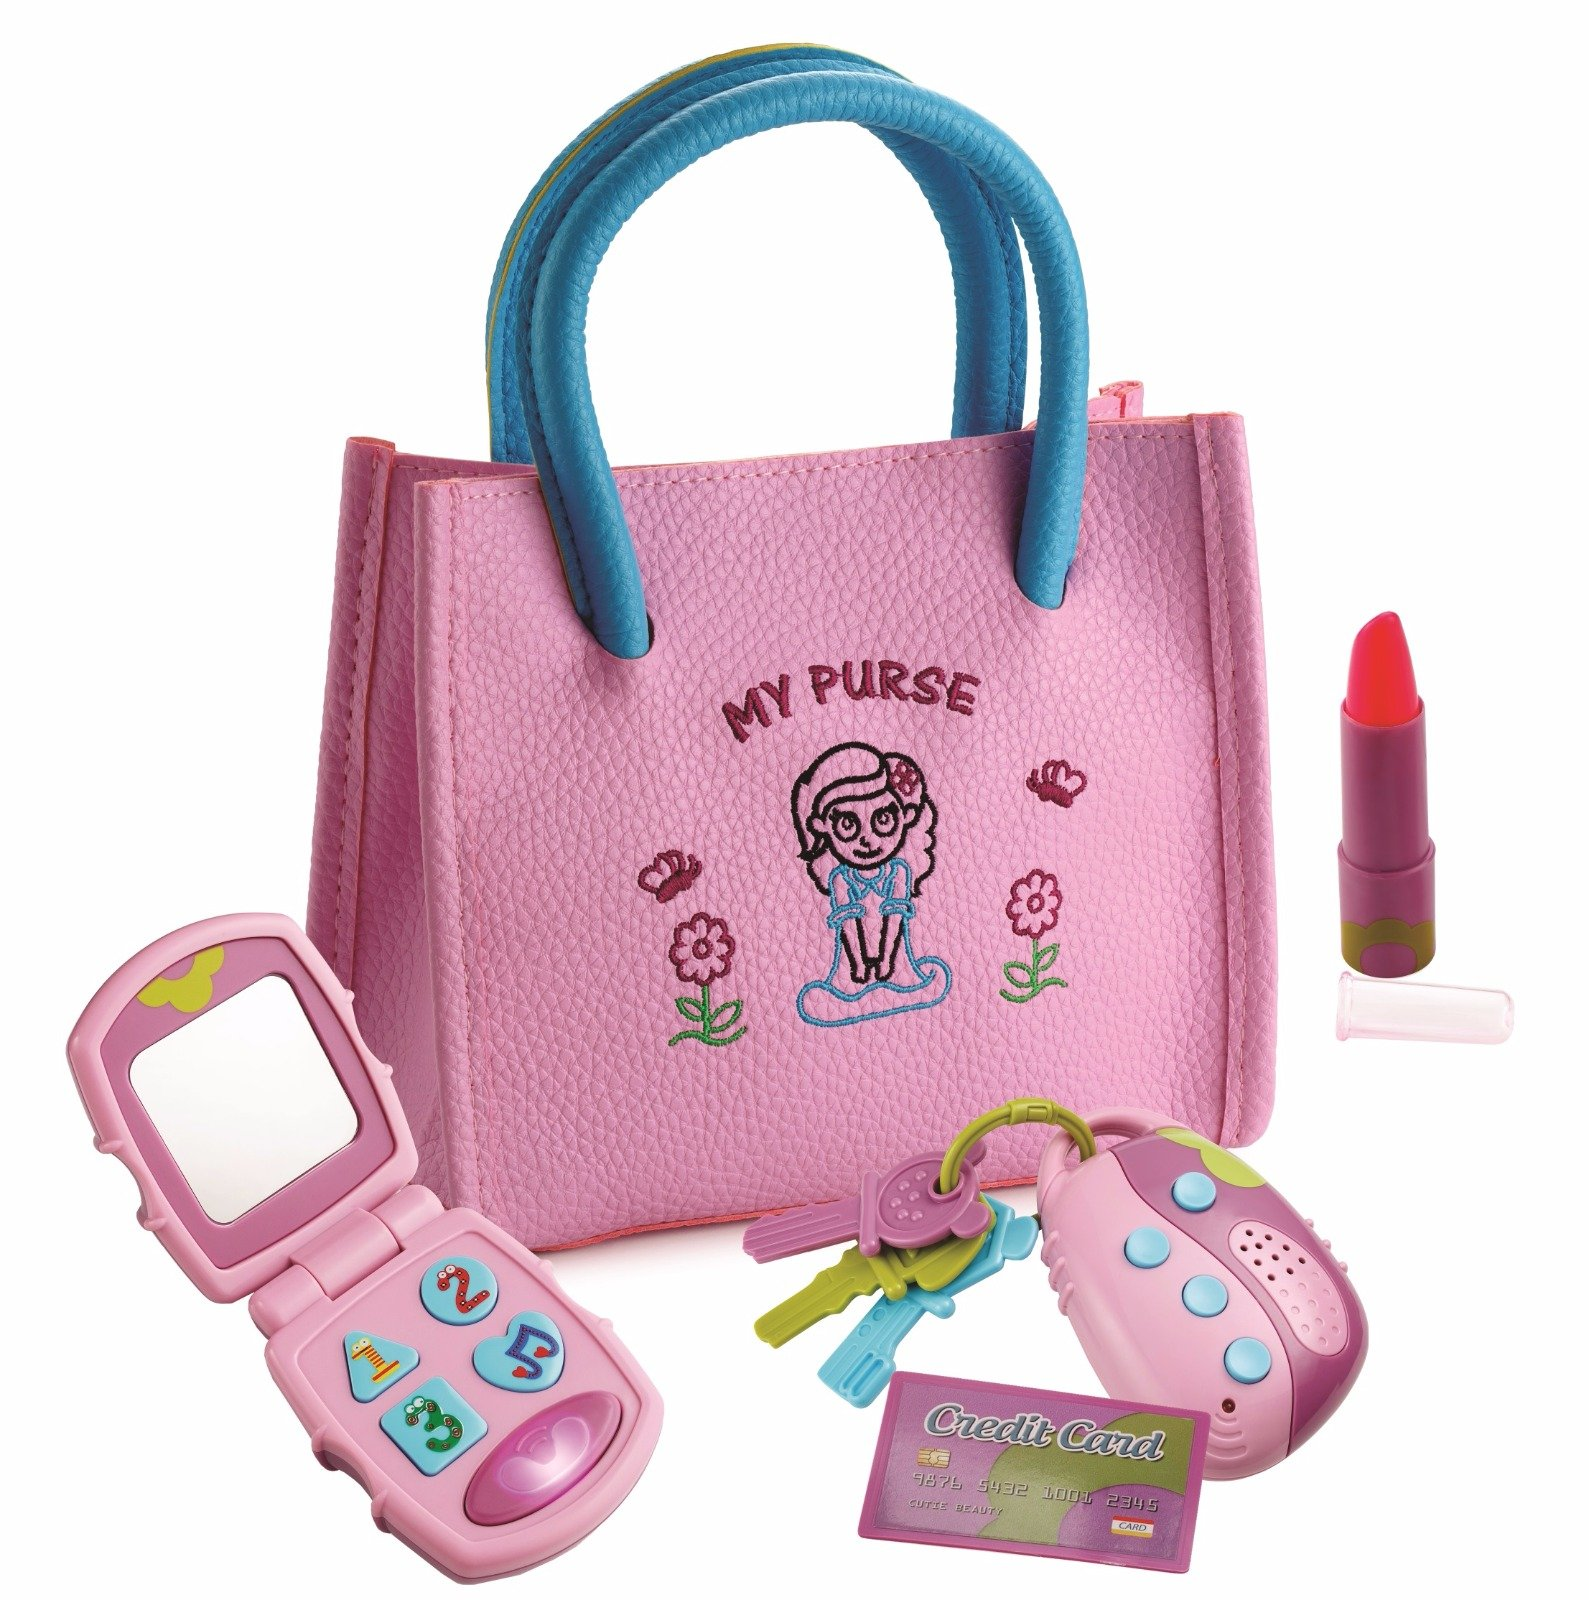 Playkidz My First Purse – Pretend Play Kid Purse Set for Girls with Handbag, Flip Phone, Light Up Remote with Keys, Play Lipstick & Kids Credit Card – Great Educational Toy for Fun & Learning